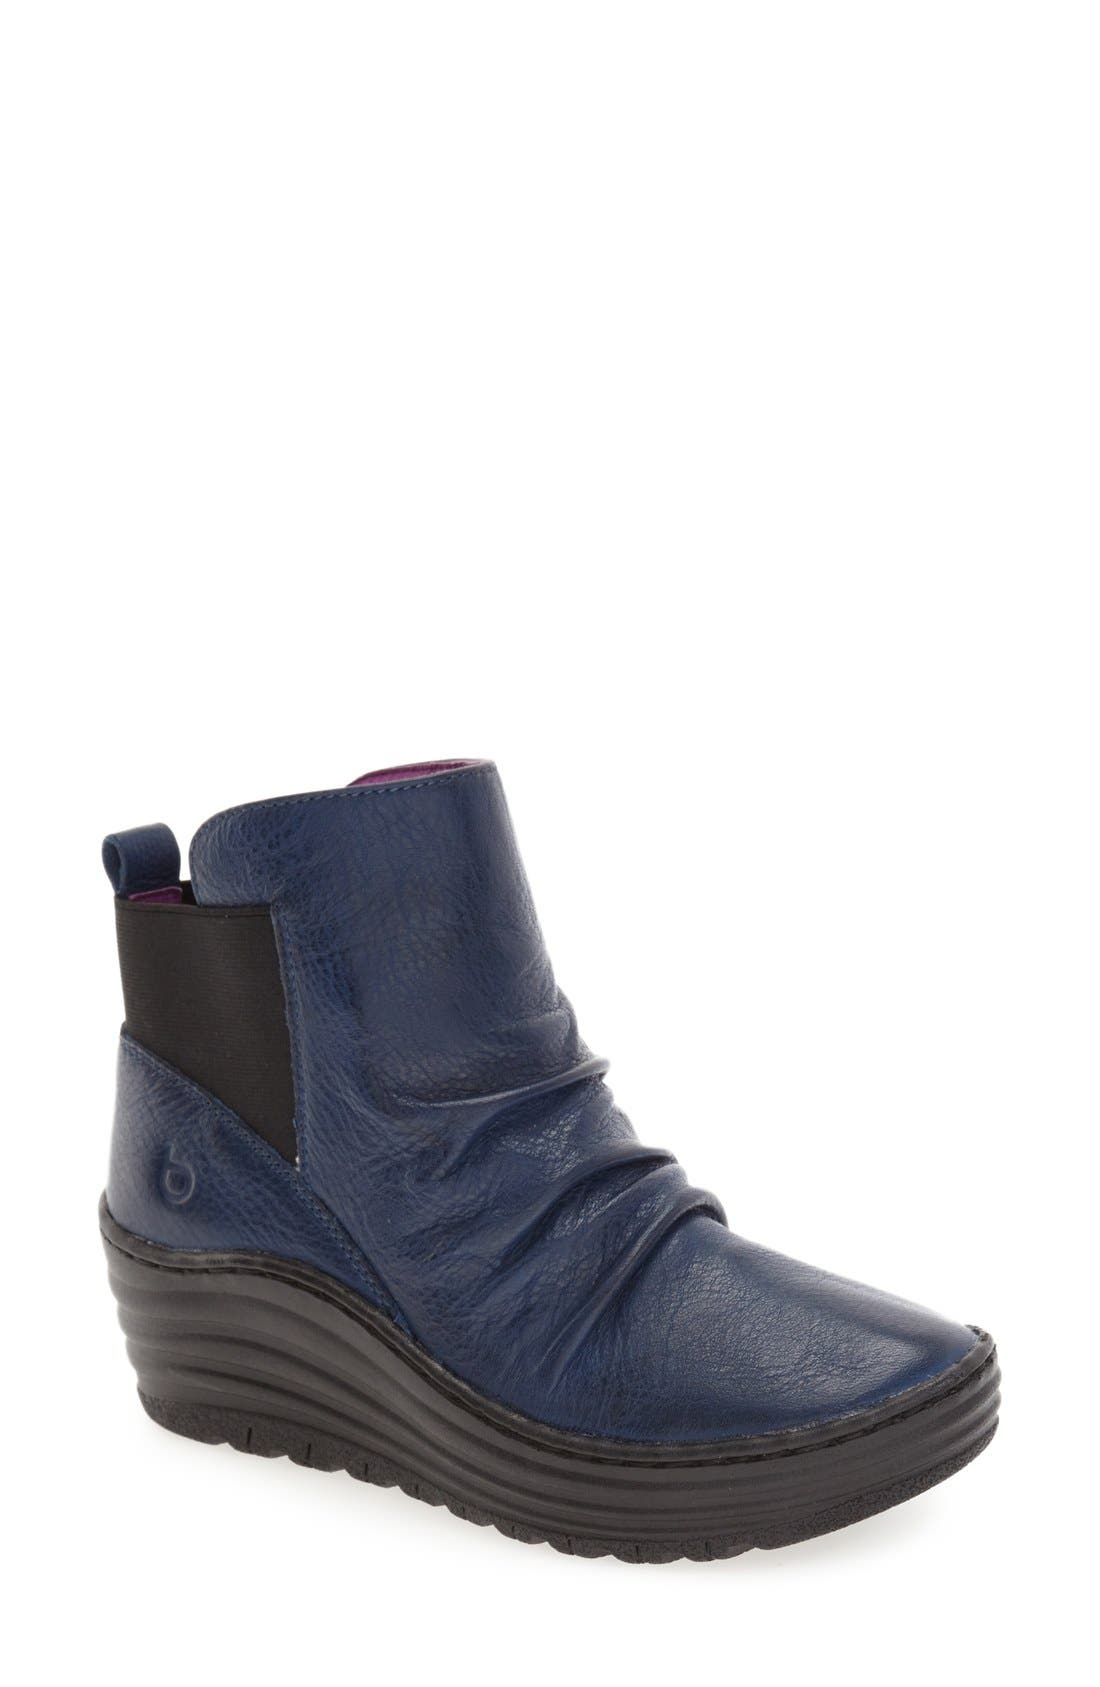 bionica 'Gilford' Wedge Bootie (Women)